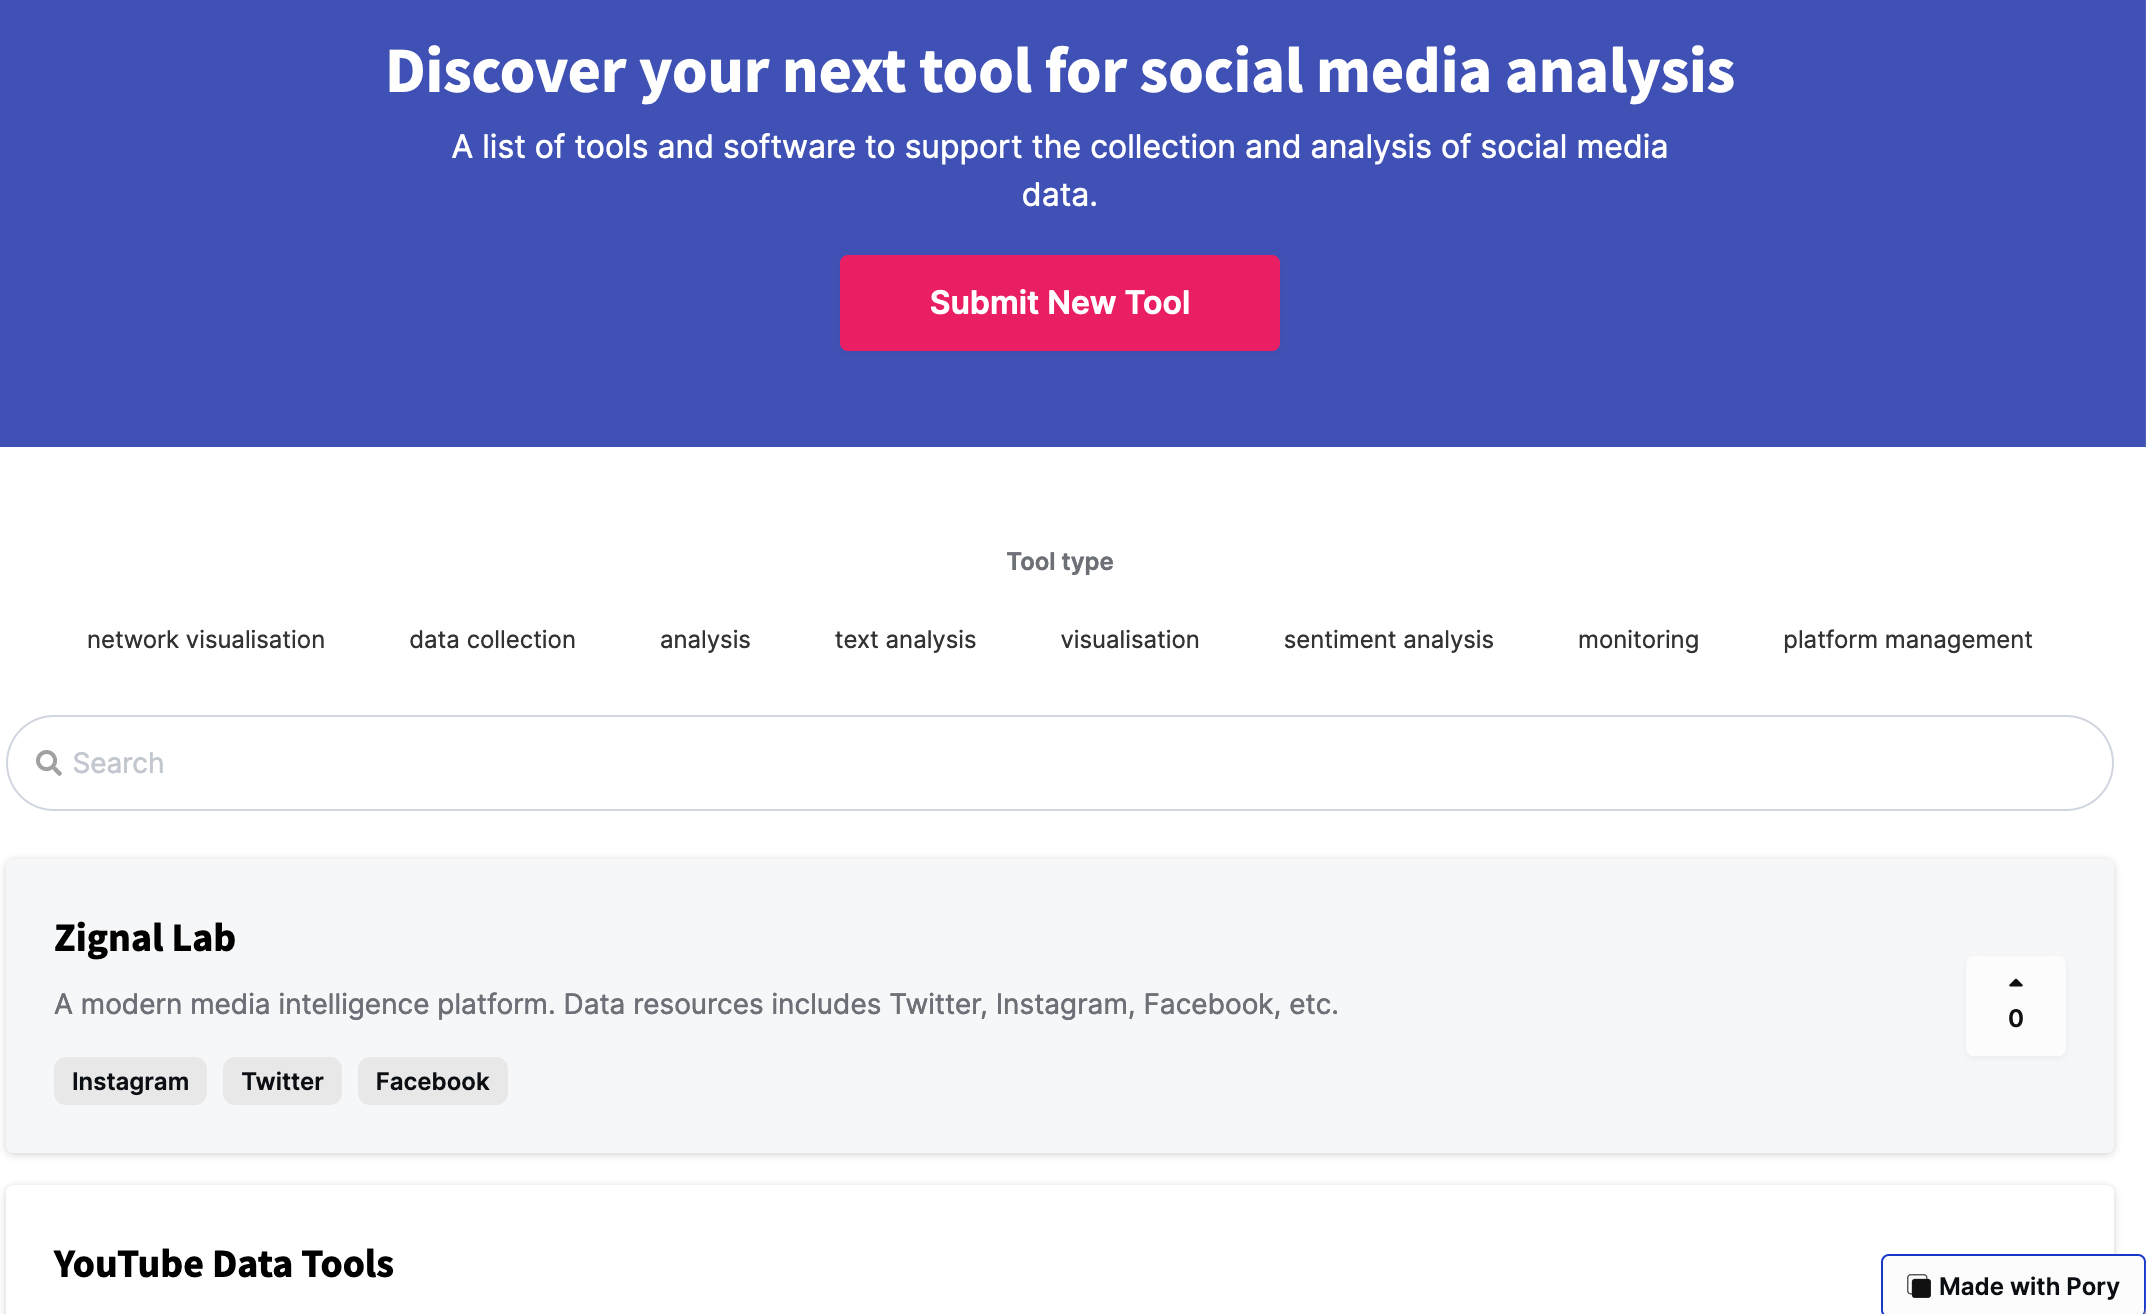 Fig. 4: Screenshot of the sub-list of social media tools rendered into a catalogue via the pory.io app. The user experience on this interface is friendlier than working with a table as in Fig. 2 & 3. A student can filter the list by the type of tool, which is immediately visible; for example they might be looking for tools to support their data collection. They can then use the search box to enter key terms and narrow down the list further, a process that is more familiar. The student can also browse the list of tools by opening the individual cards to find more information (see next figure).